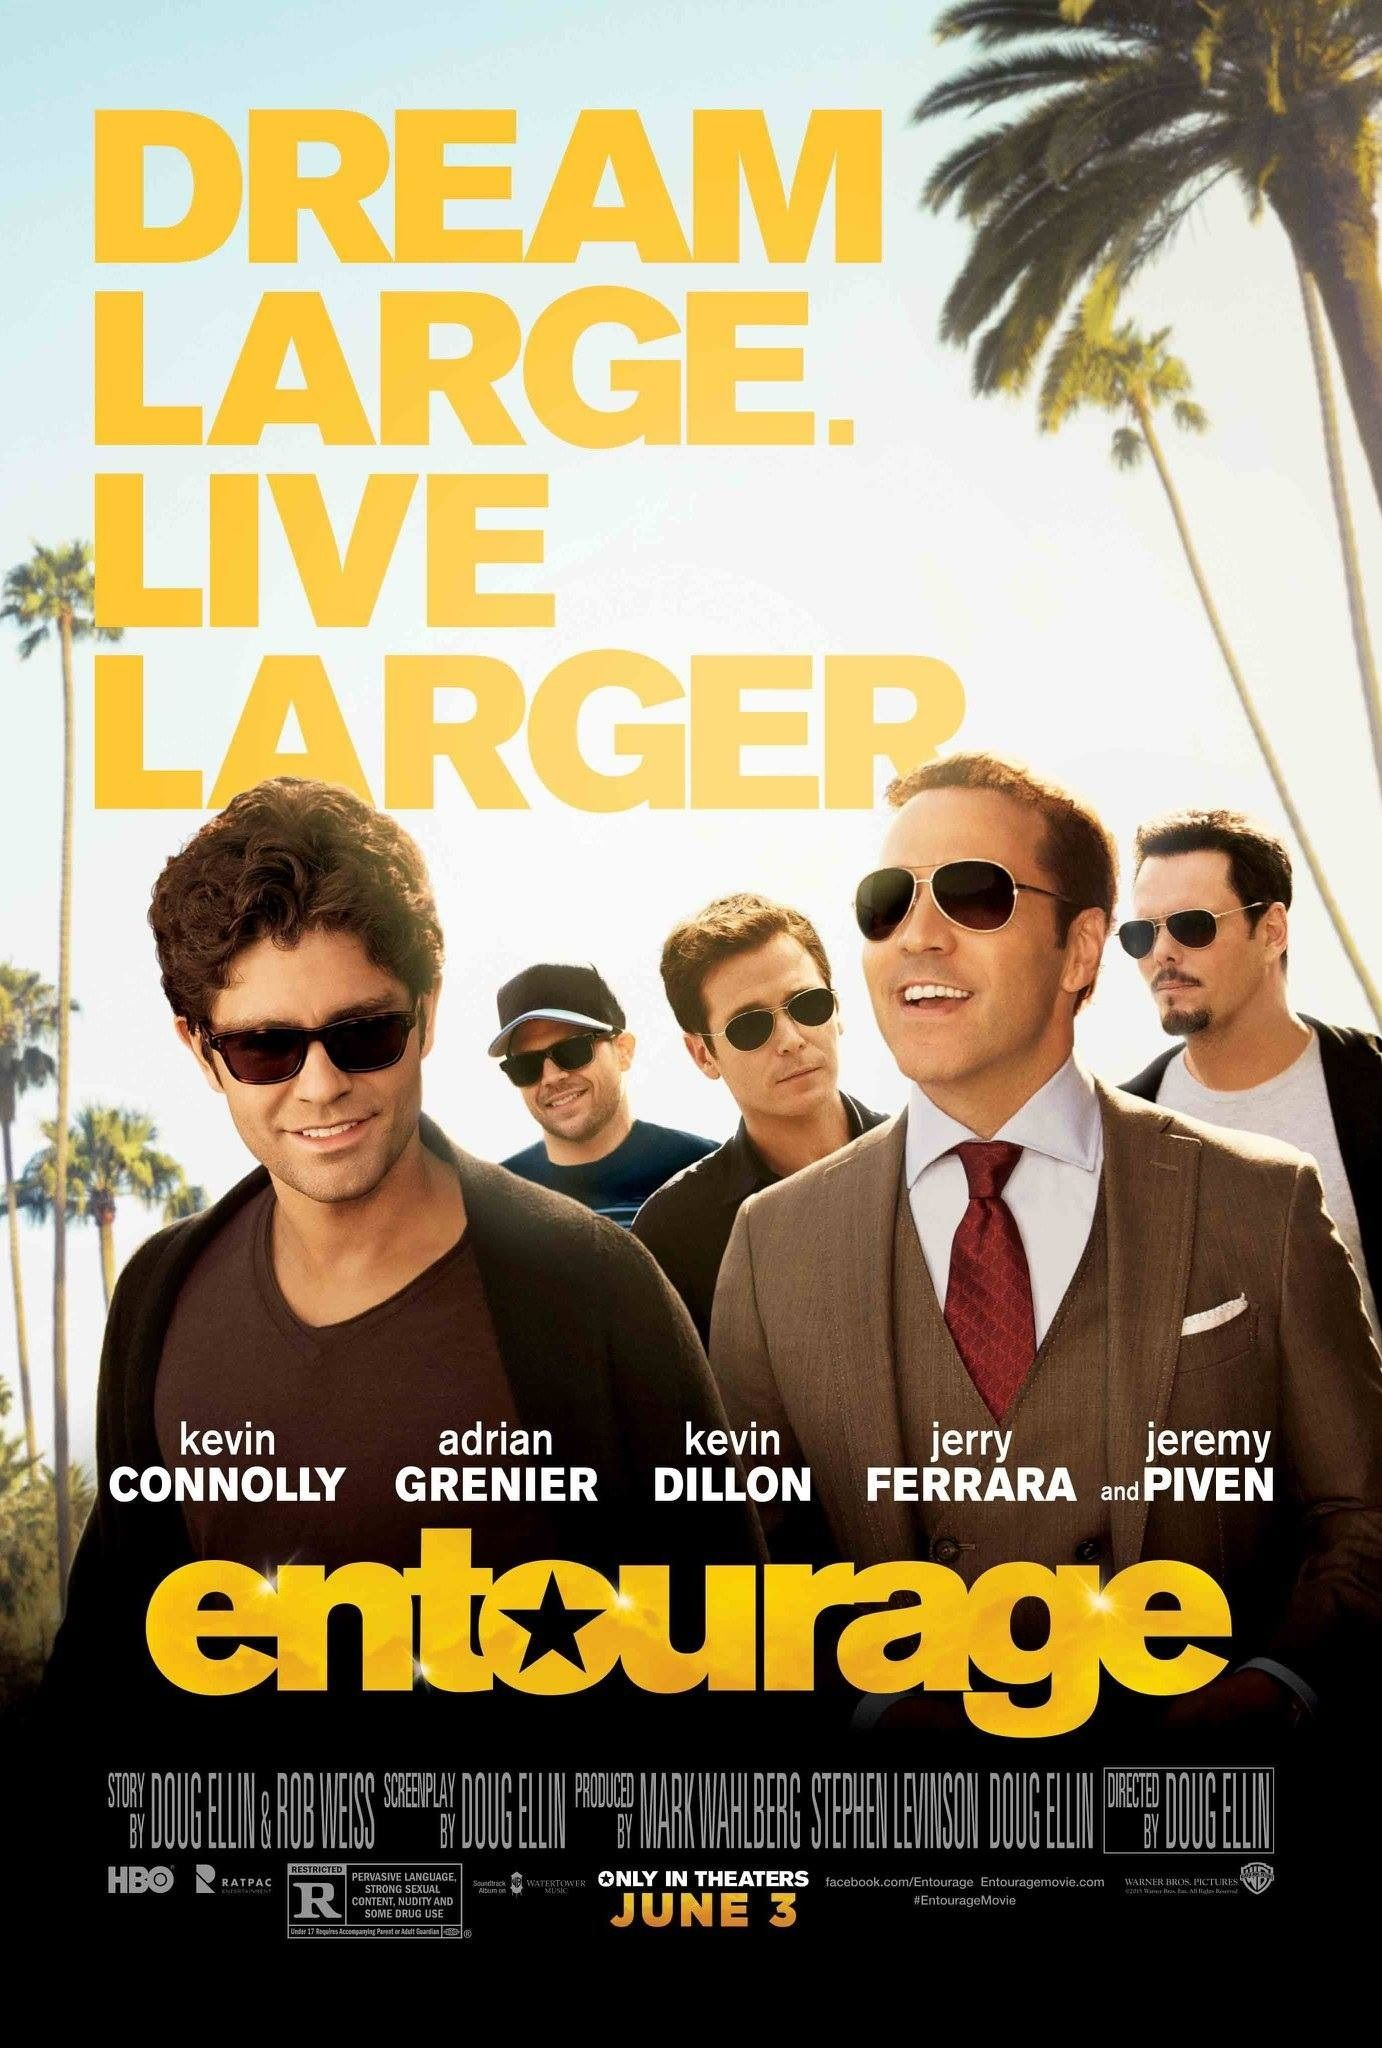 encore entourage the movie warner bros pictures presents in association with home box office in association with ratpac dune entertainment a clo ジョン